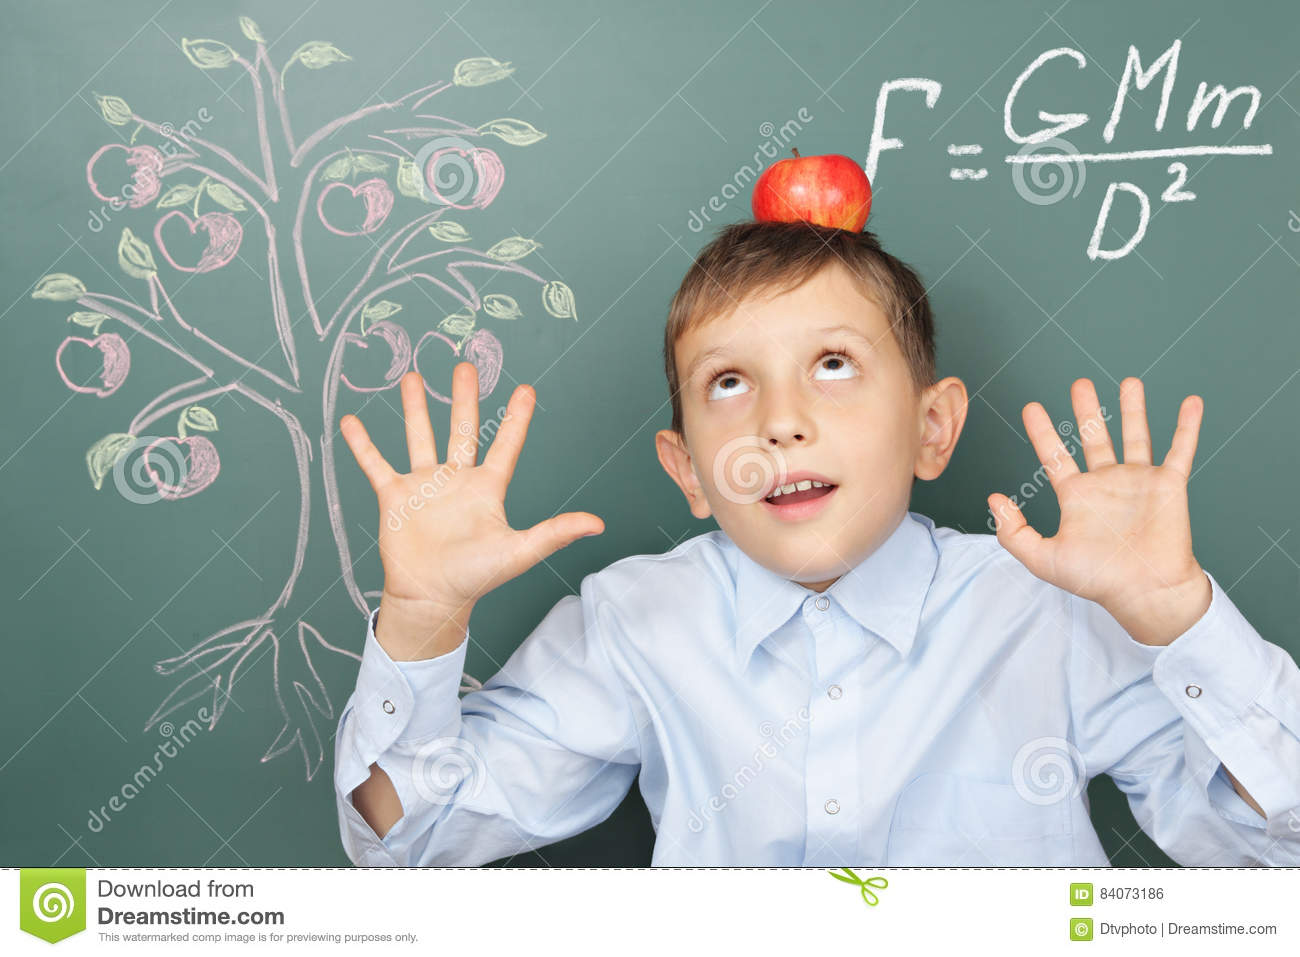 Education Funny Concept Stock Photo Image Of Fancy